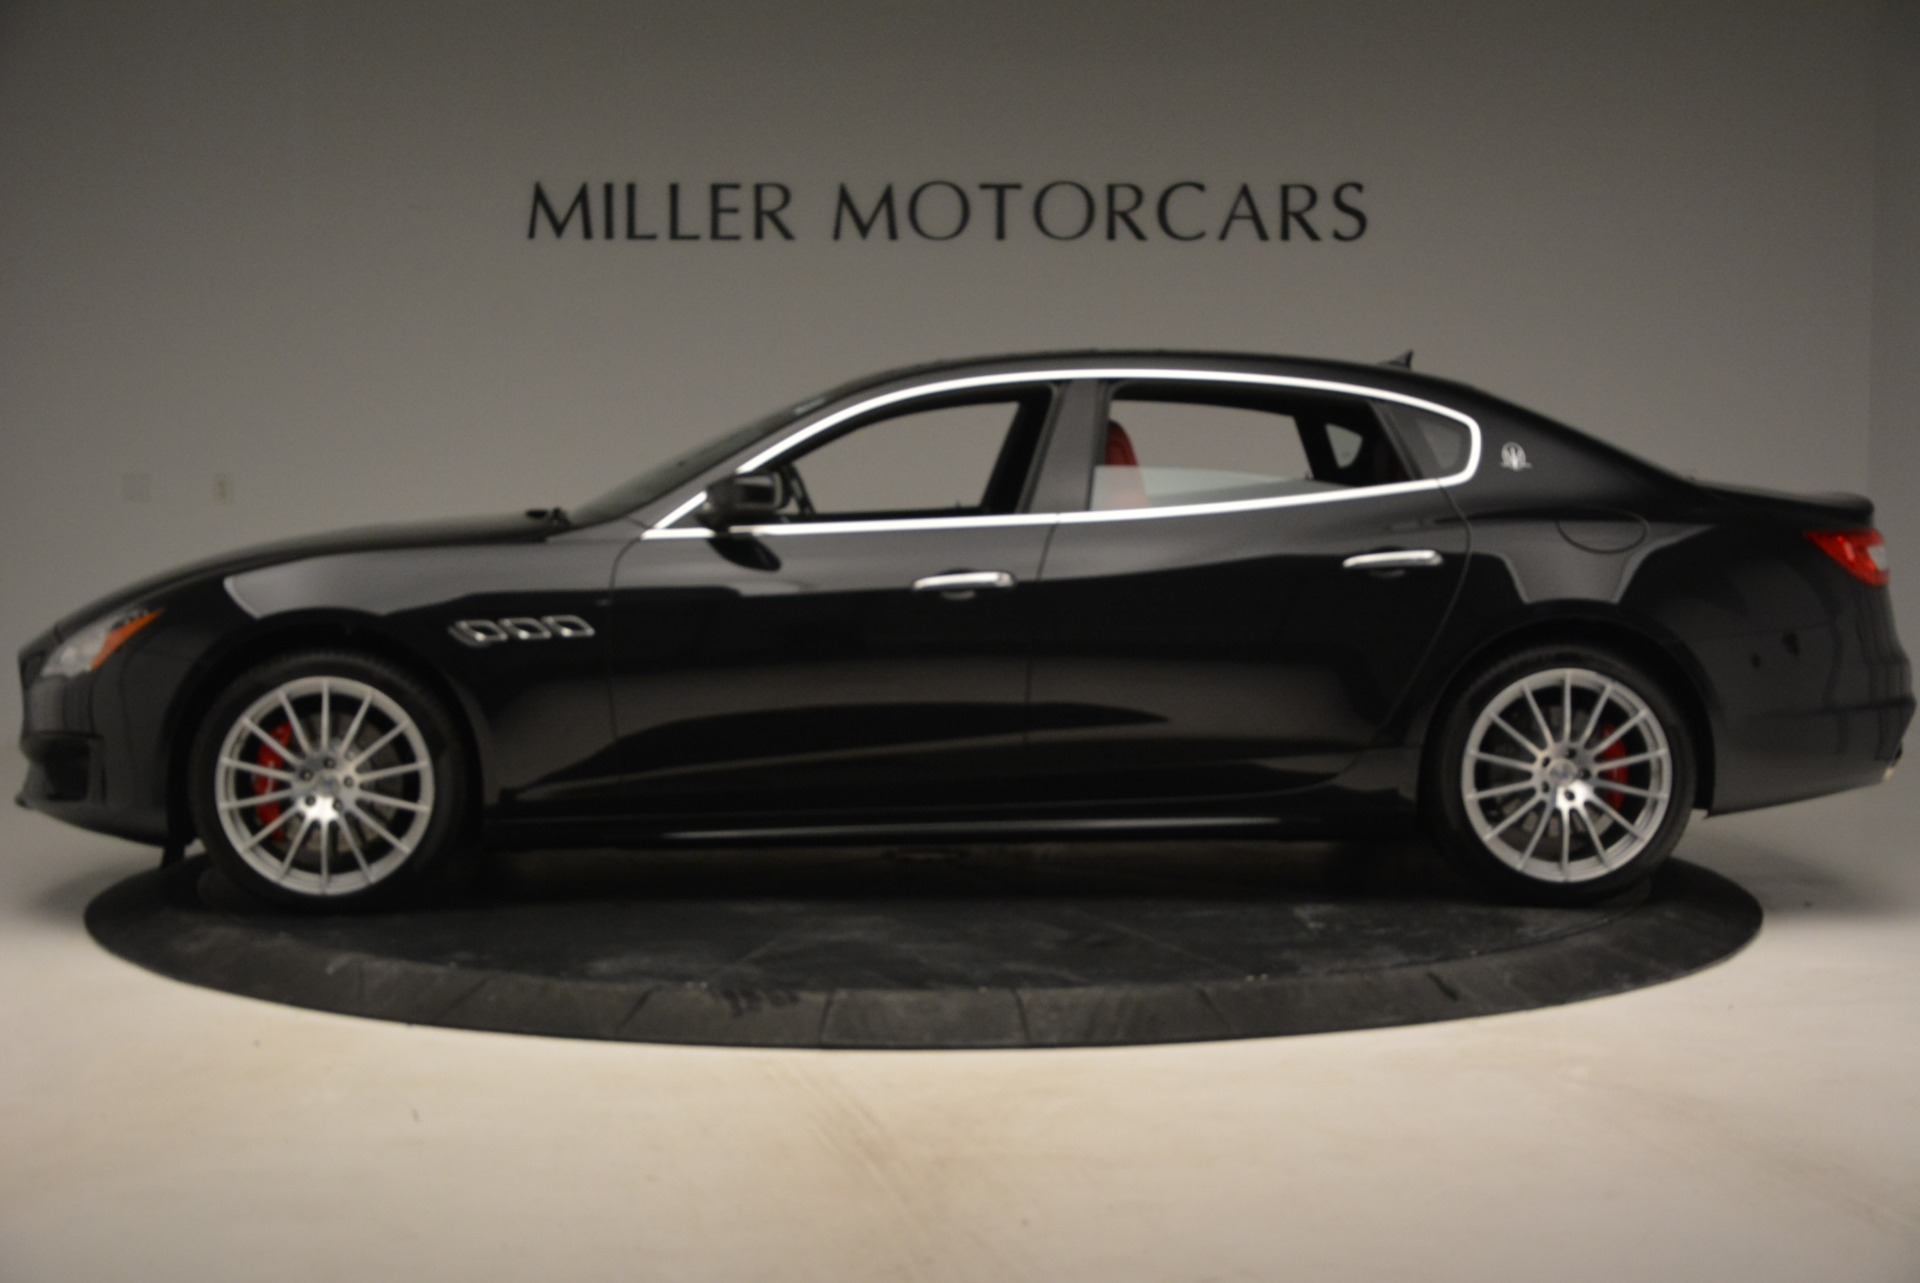 New 2017 Maserati Quattroporte S Q4 GranSport For Sale In Westport, CT 790_p3